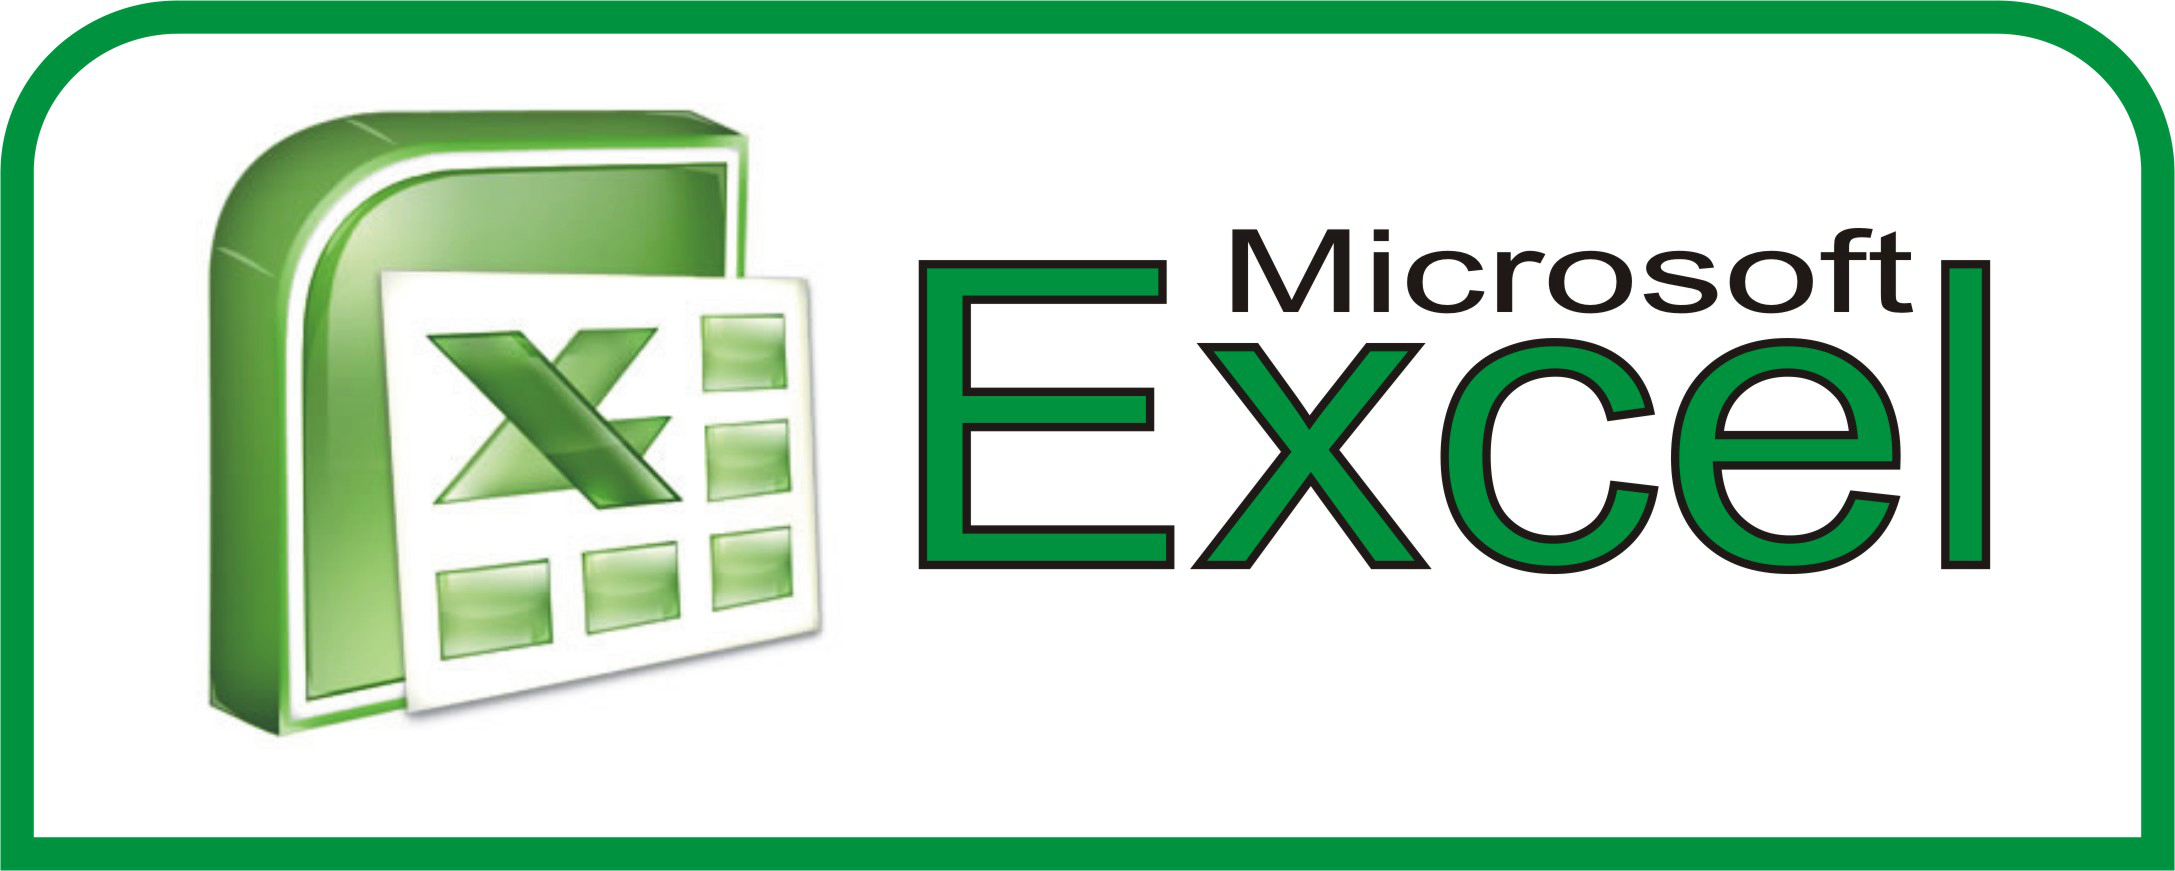 Ediblewildsus  Wonderful  Excel Shortcuts You Probably Didnt Know About  Techdissected With Interesting Date Diff Excel Besides Use Excel Data In Word Furthermore Syntax In Excel Definition With Astonishing Pdt To Excel Converter Also Data Range In Excel In Addition Excel Payback Period And Auto Outline Excel As Well As Excel  Ebook Additionally Msn Moneycentral Excel From Techdissectedcom With Ediblewildsus  Interesting  Excel Shortcuts You Probably Didnt Know About  Techdissected With Astonishing Date Diff Excel Besides Use Excel Data In Word Furthermore Syntax In Excel Definition And Wonderful Pdt To Excel Converter Also Data Range In Excel In Addition Excel Payback Period From Techdissectedcom